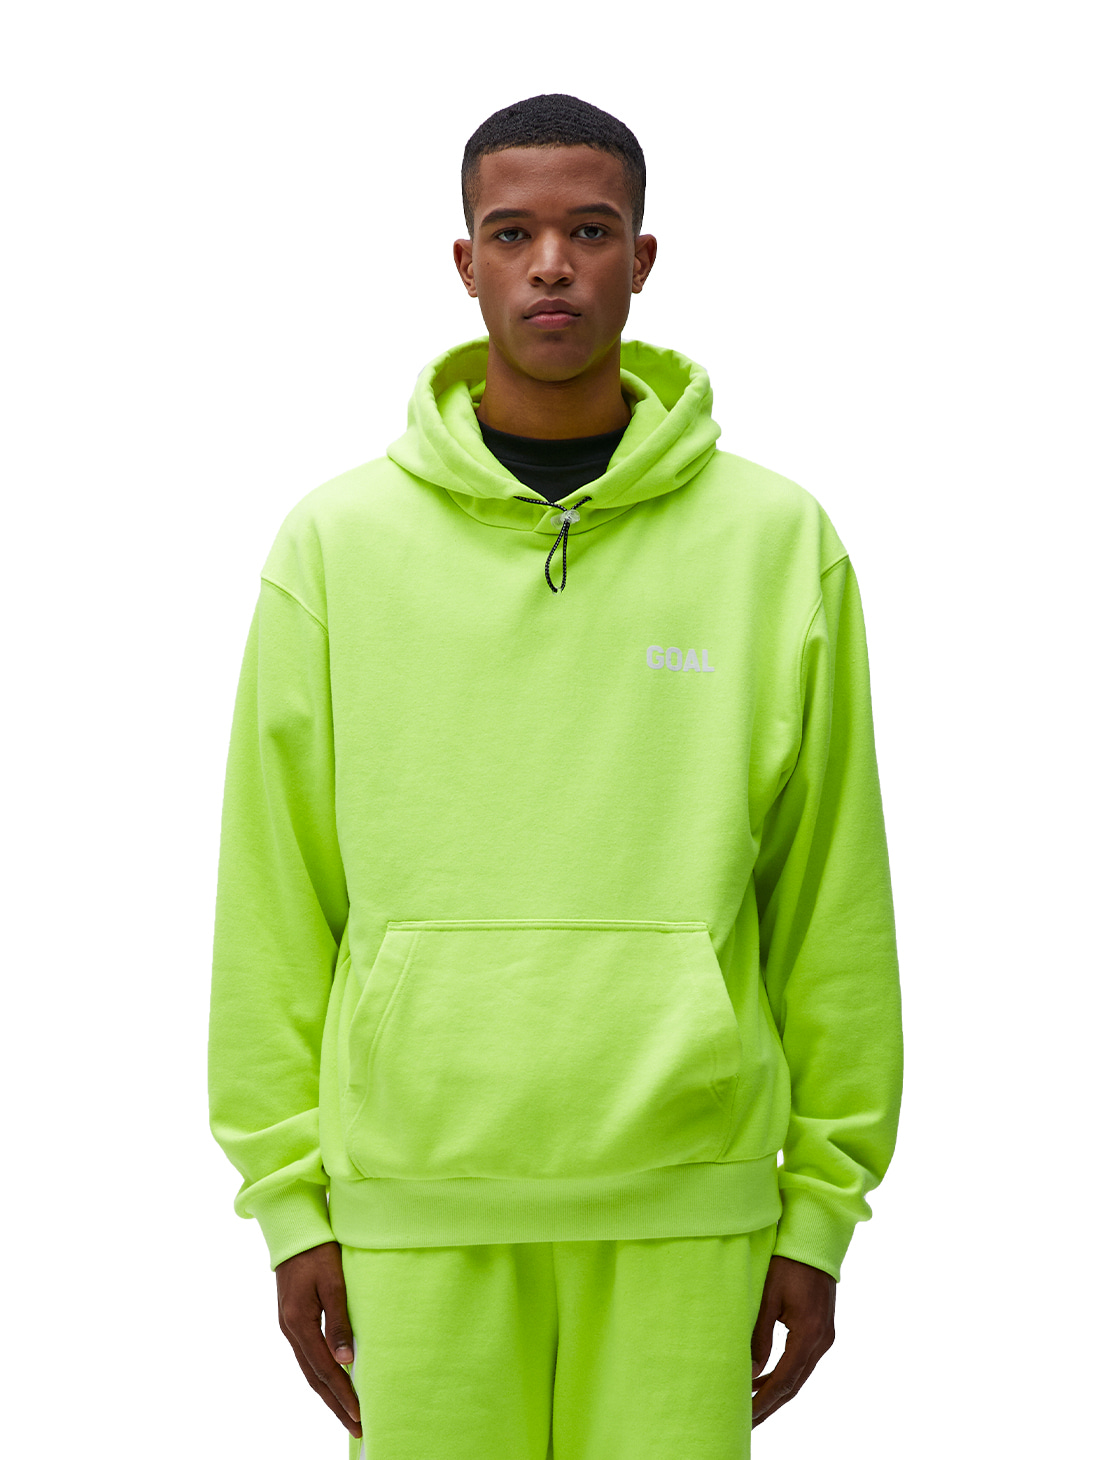 GOALSTUDIO FLOCKING HOODIE - LIME YELLOW